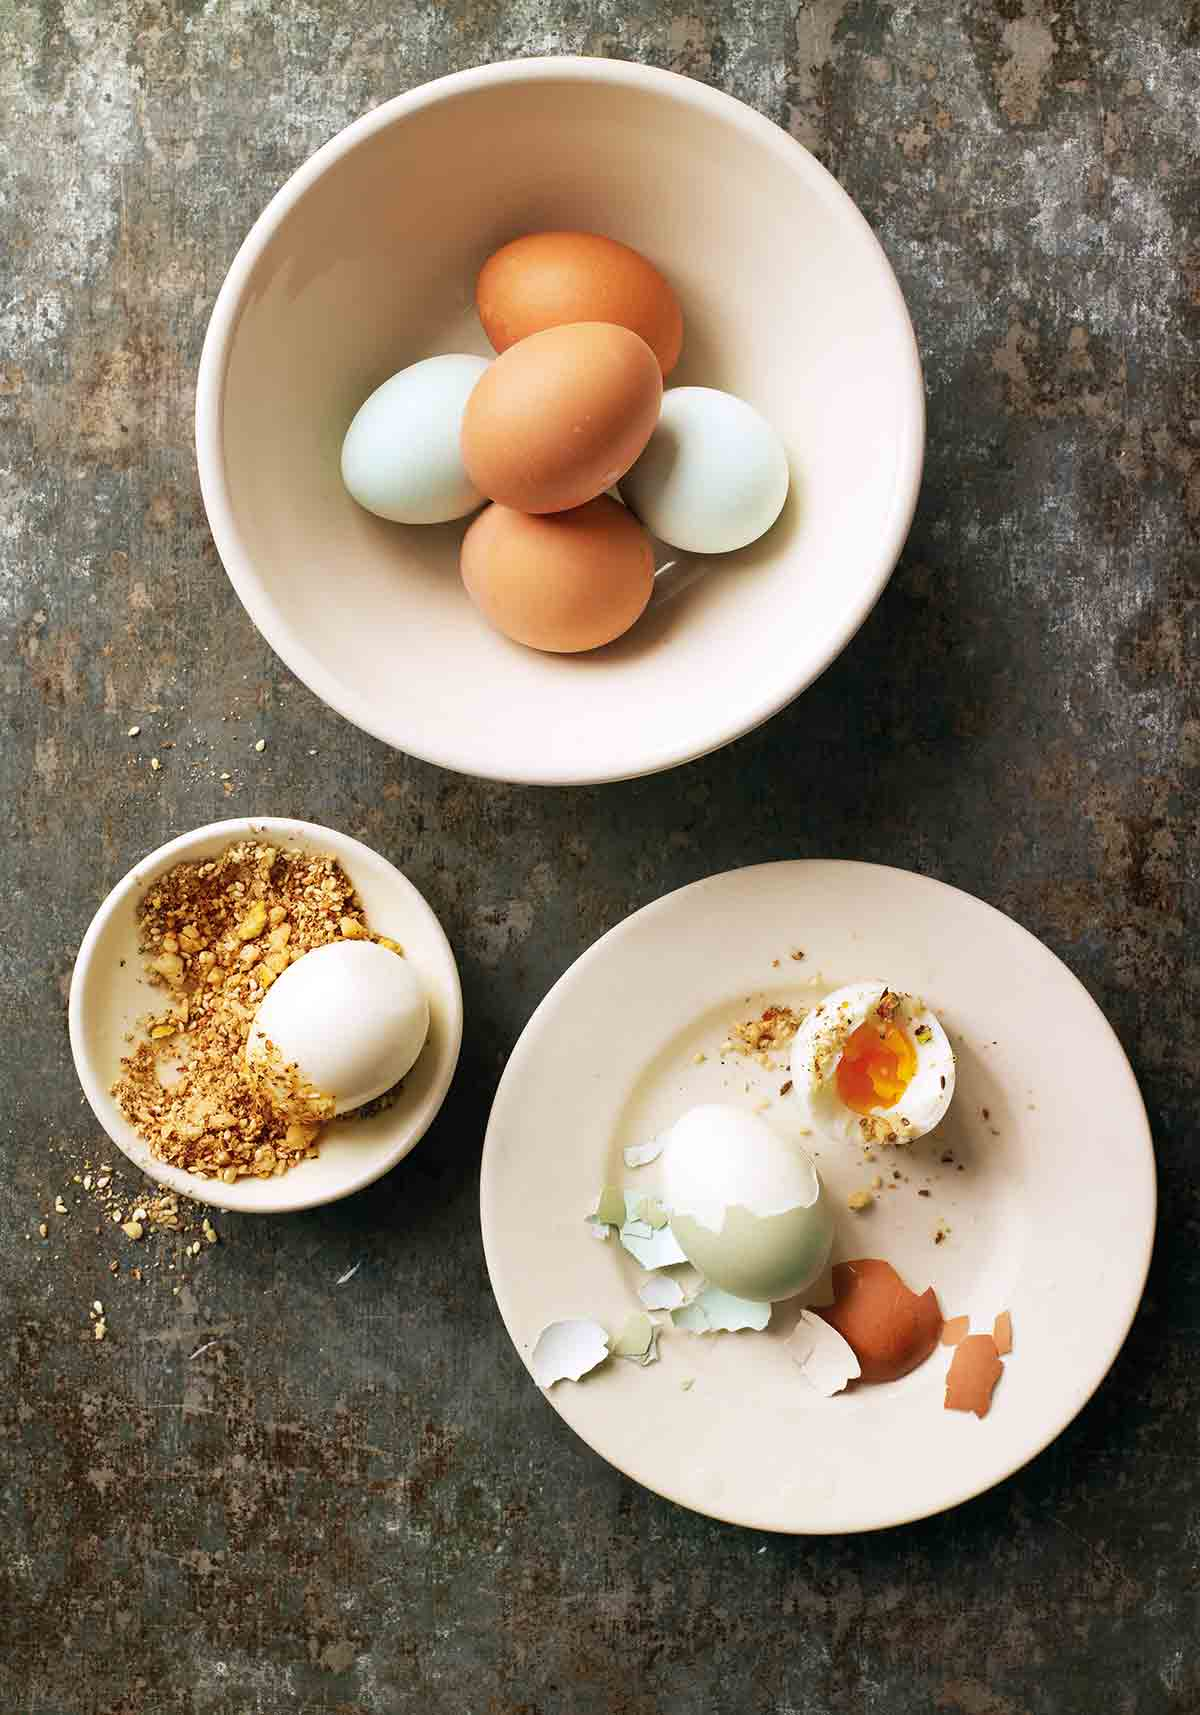 A bowl of hard-boiled eggs with dukkah in a bowl next to it.